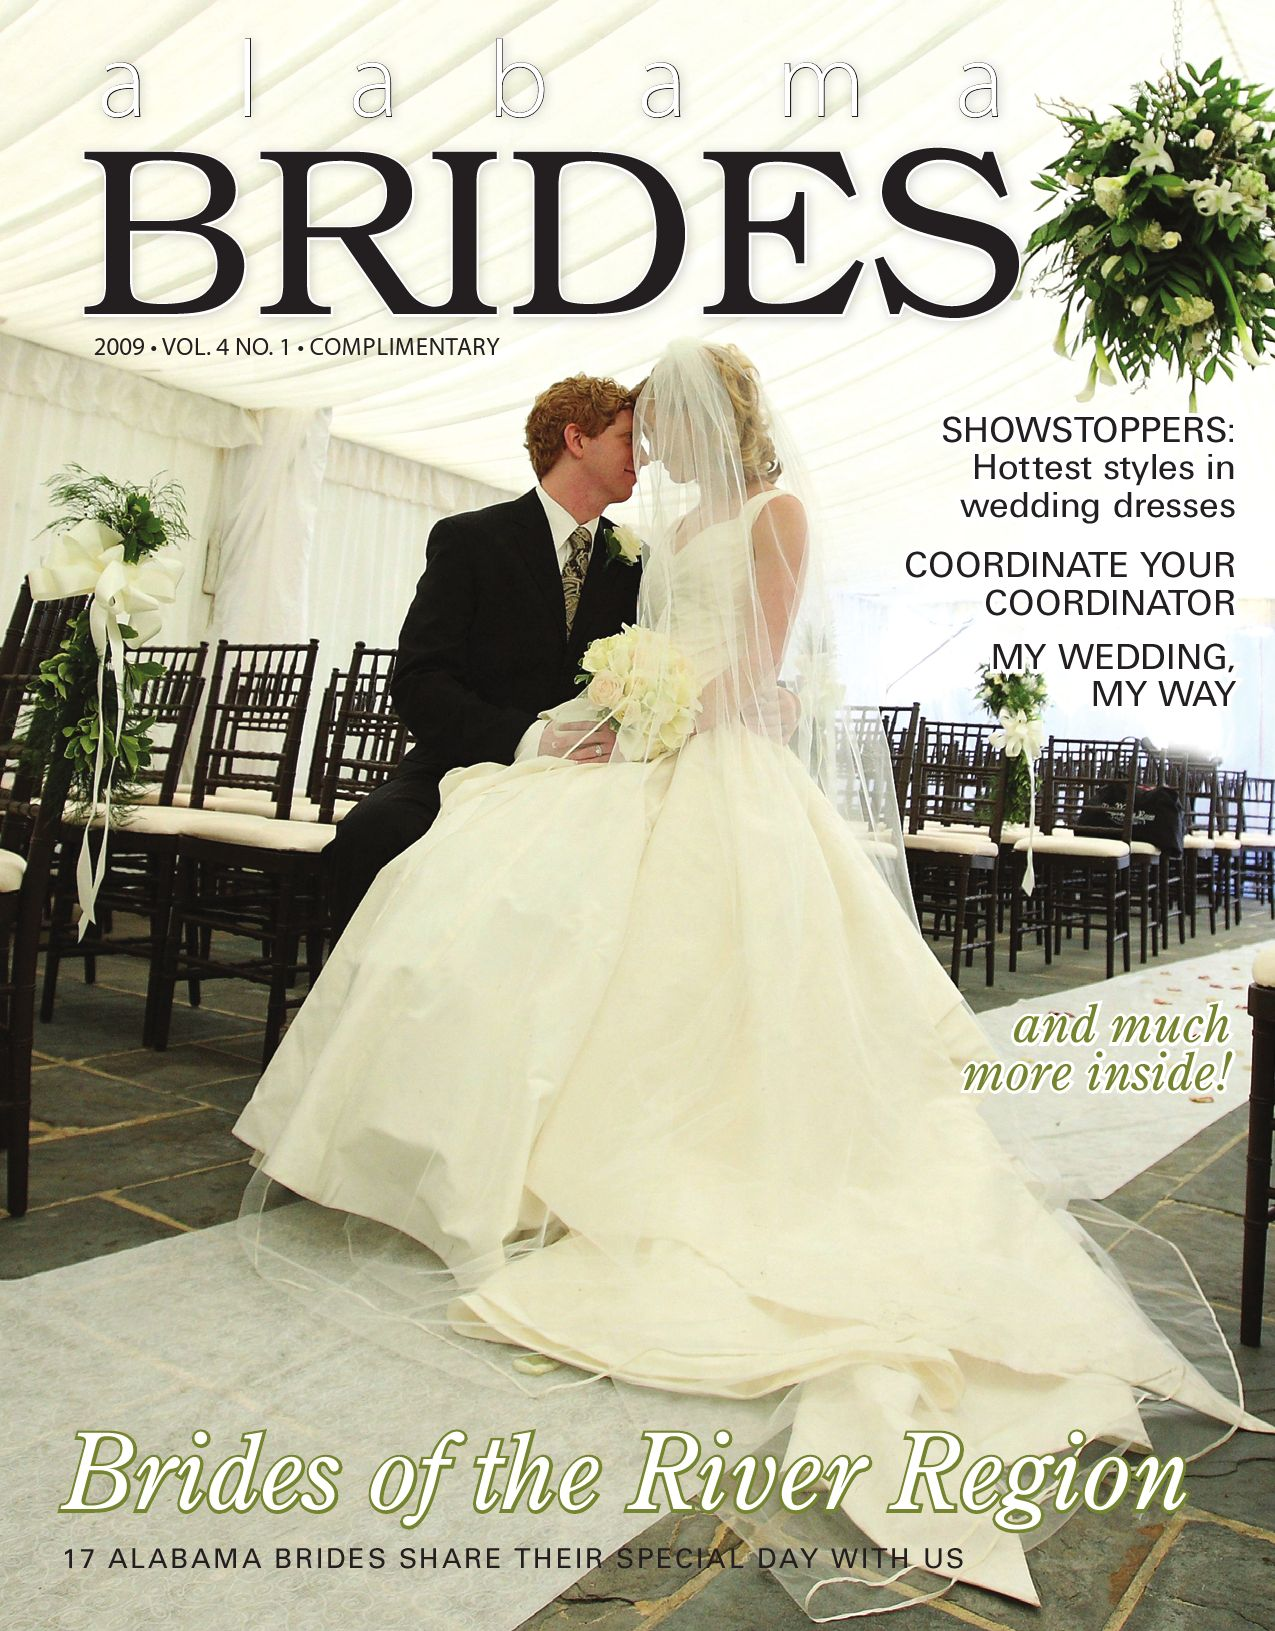 Alabama brides spring 2009 by montgomery advertiser issuu for Wedding dresses montgomery al